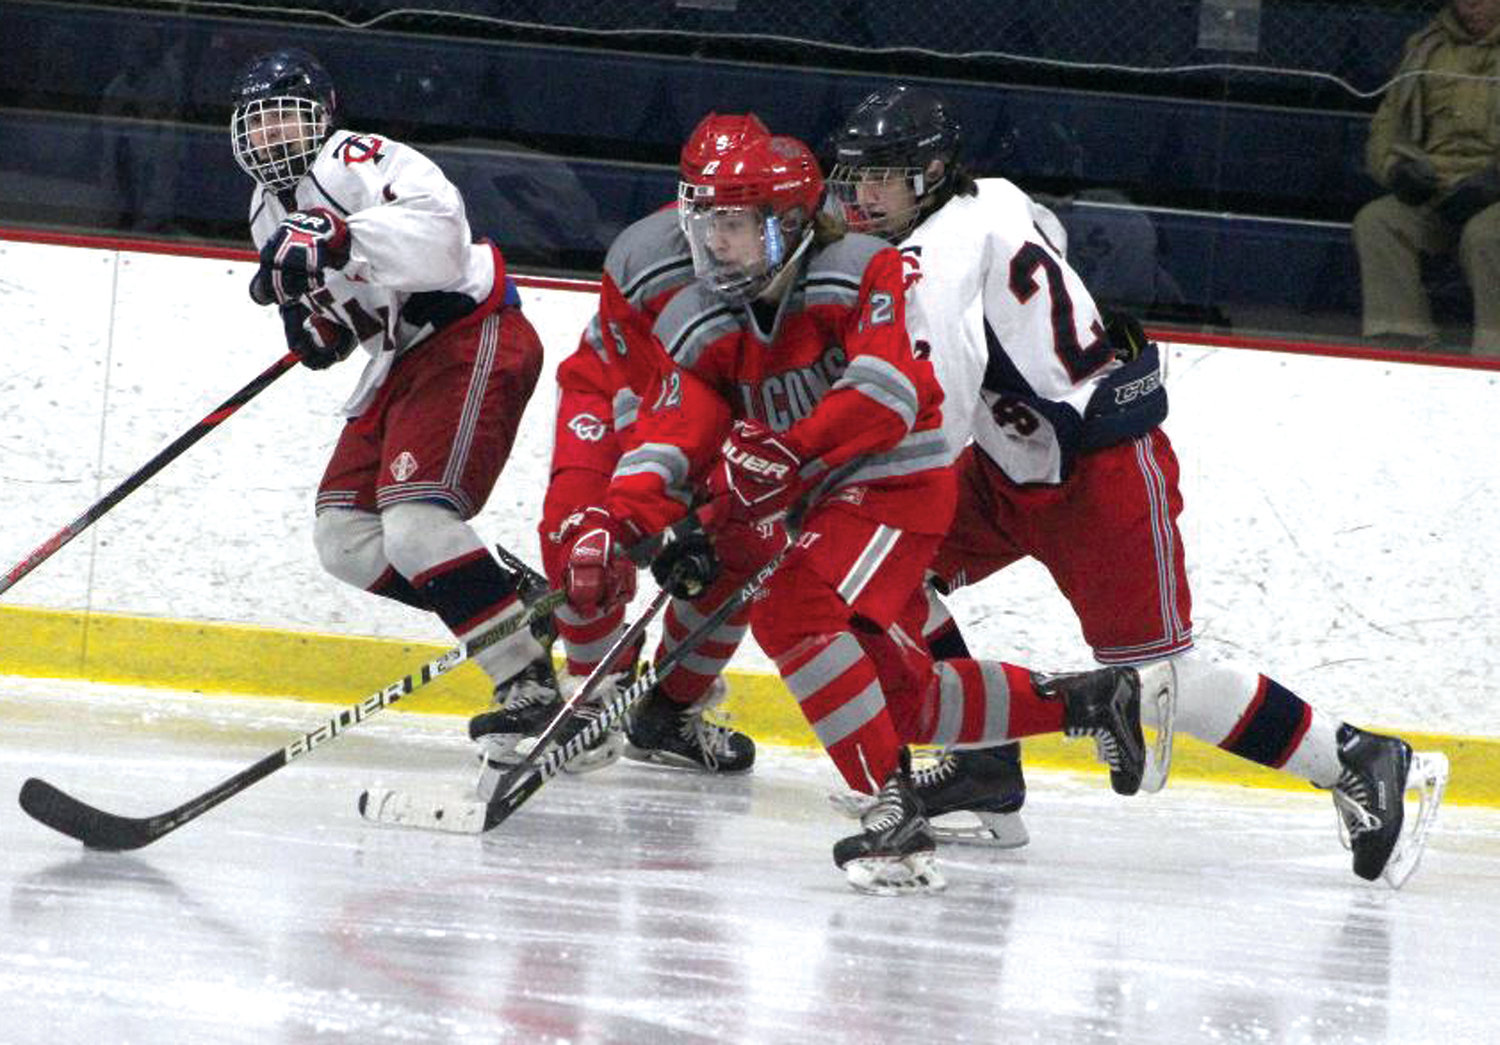 STICK WORK: Cranston West's Ryan Demers works his way up the ice against Toll Gate.